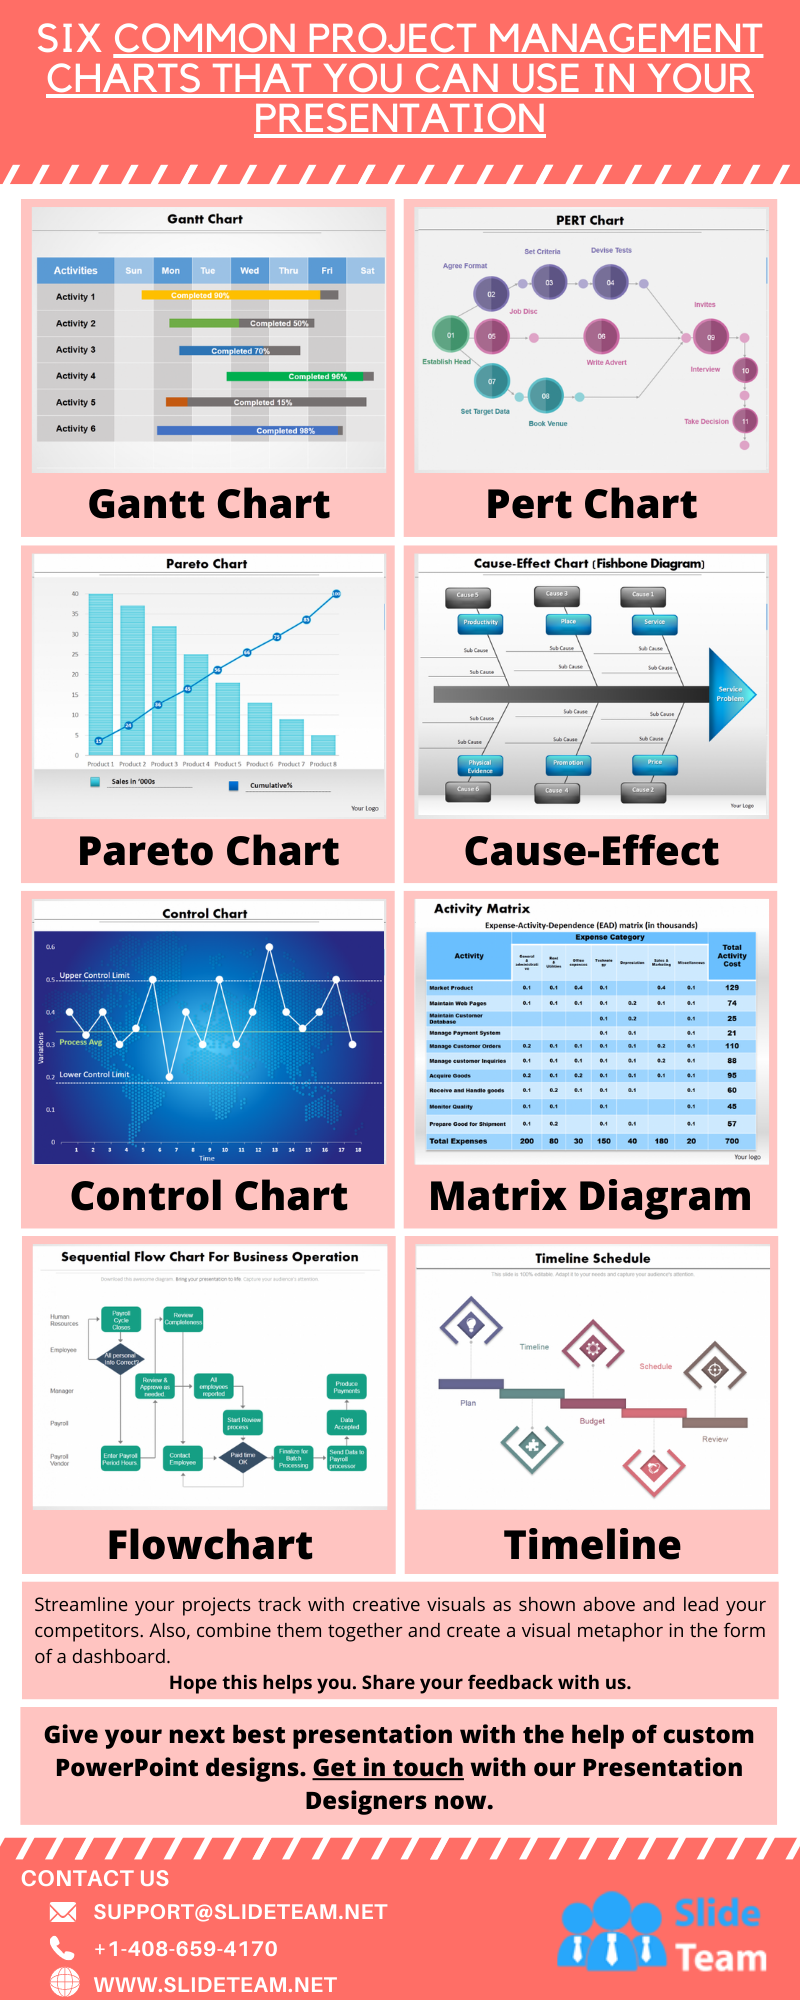 Six Common Project Management Charts That You Can Use in Your Presentation #infographic